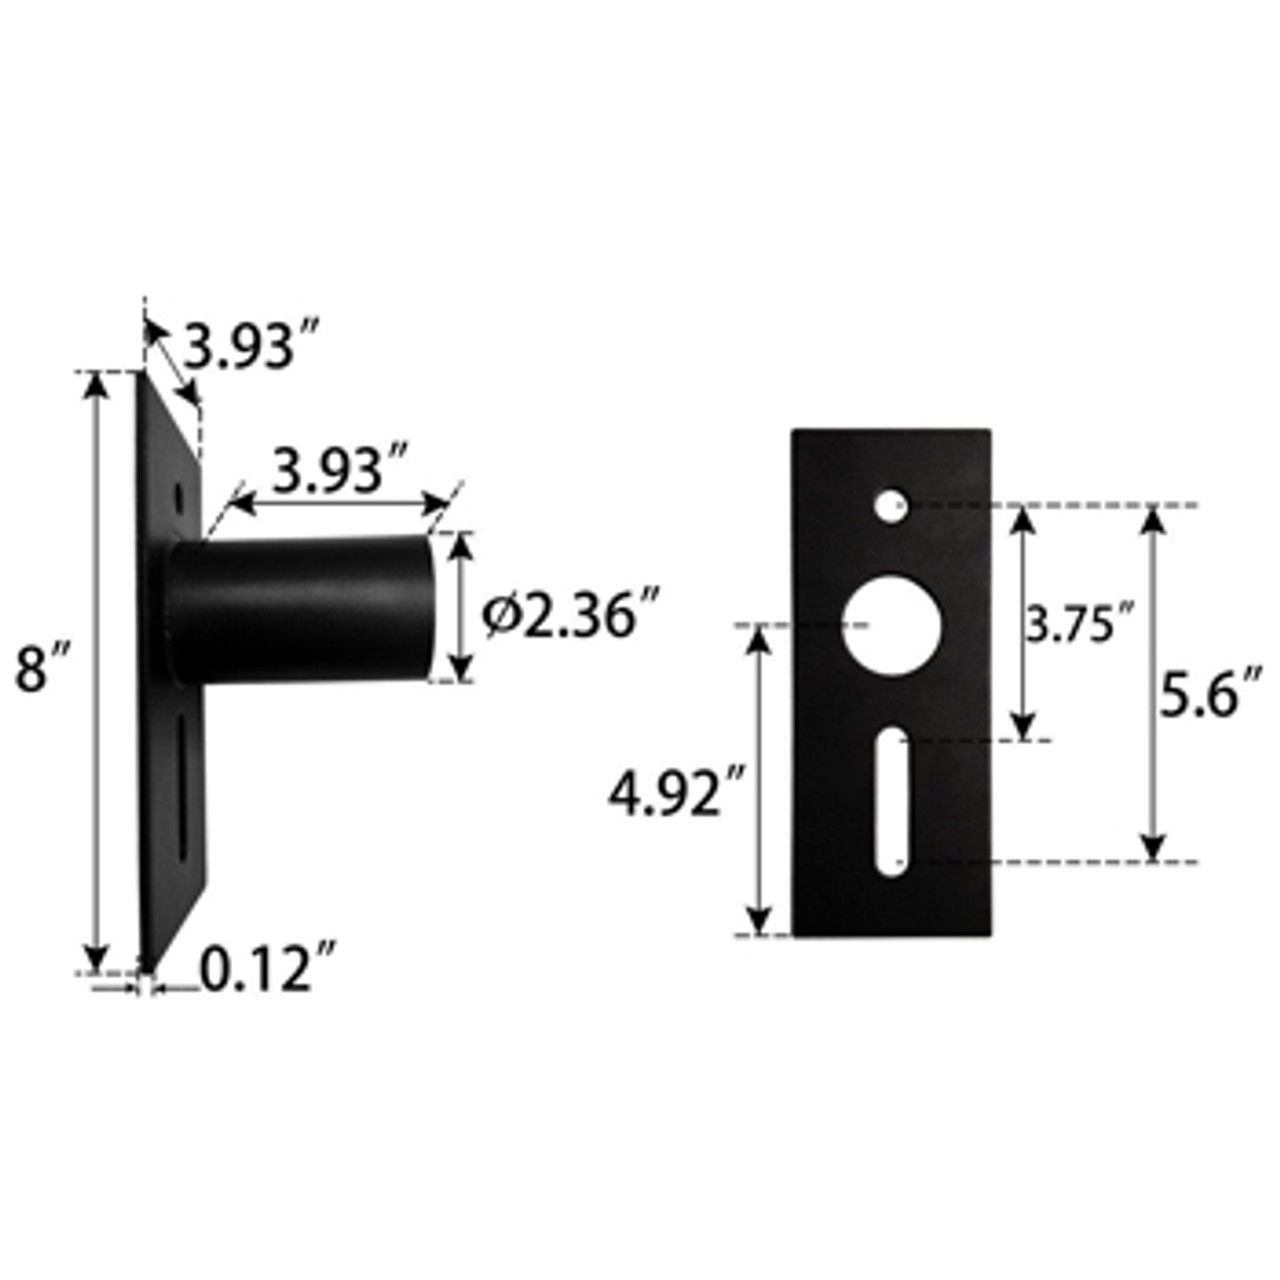 Slip Fitter Adaptor Dimensions